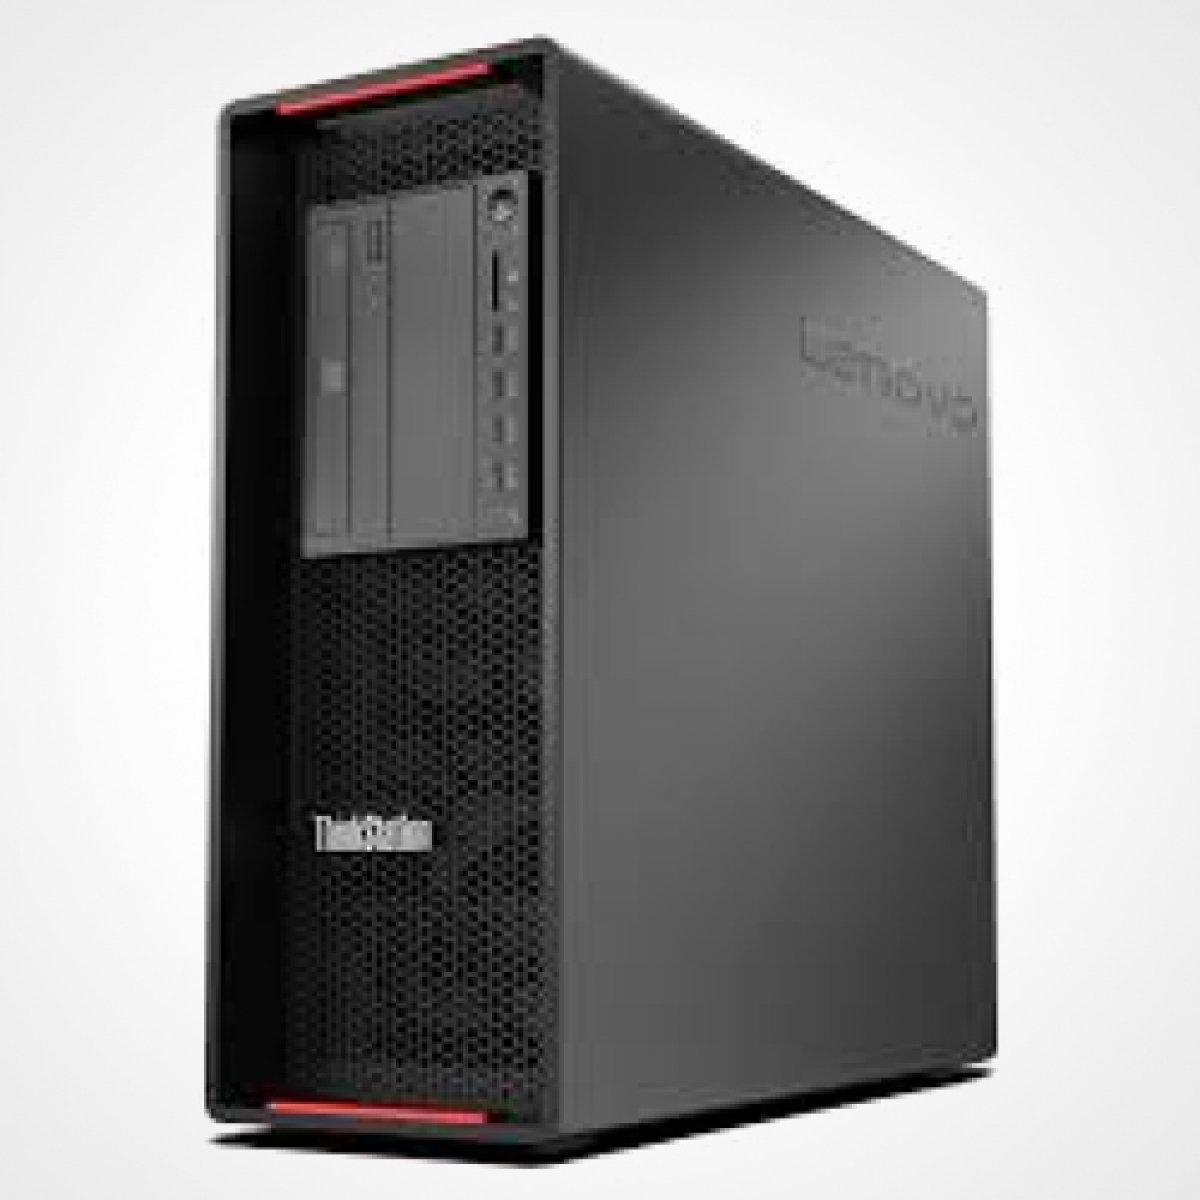 ThinkStation P720 Tower Workstation